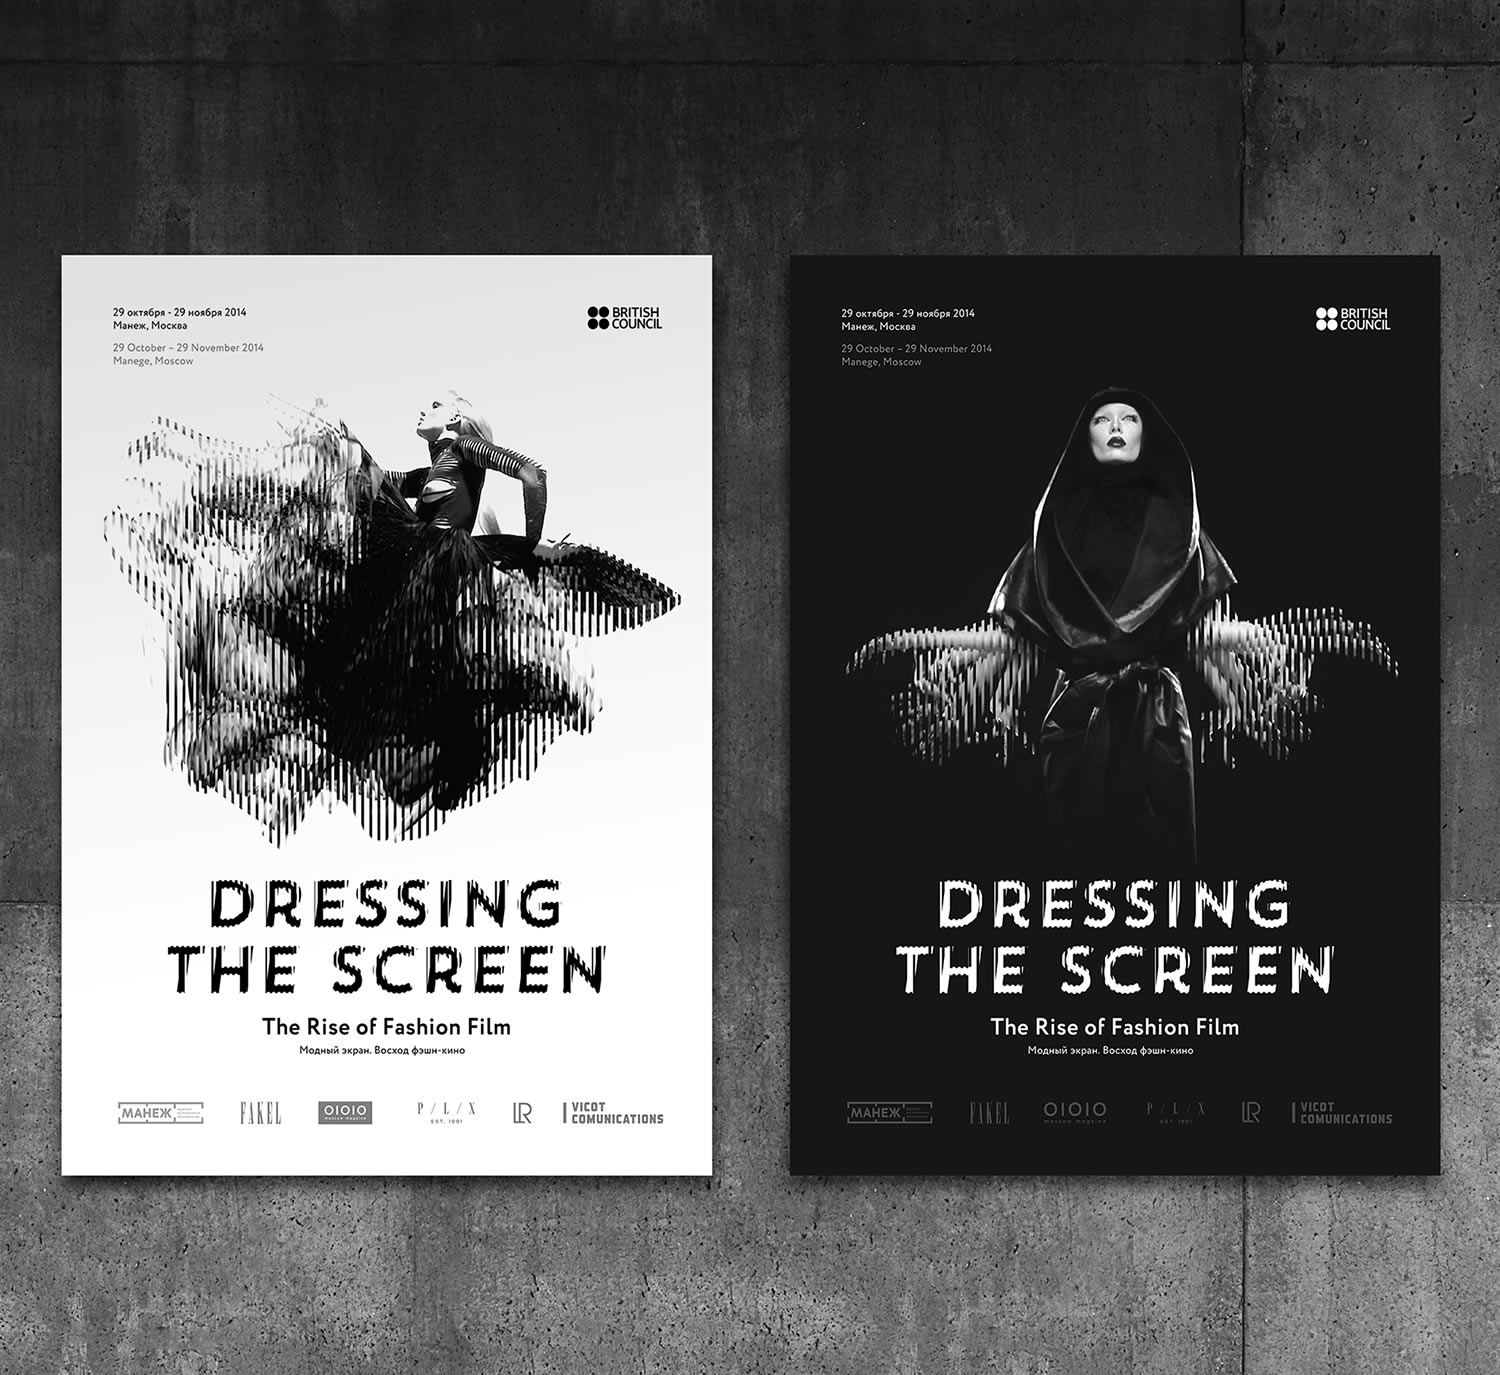 Dressing The Screen Exhibition Identity by Roma Lazarev & Co